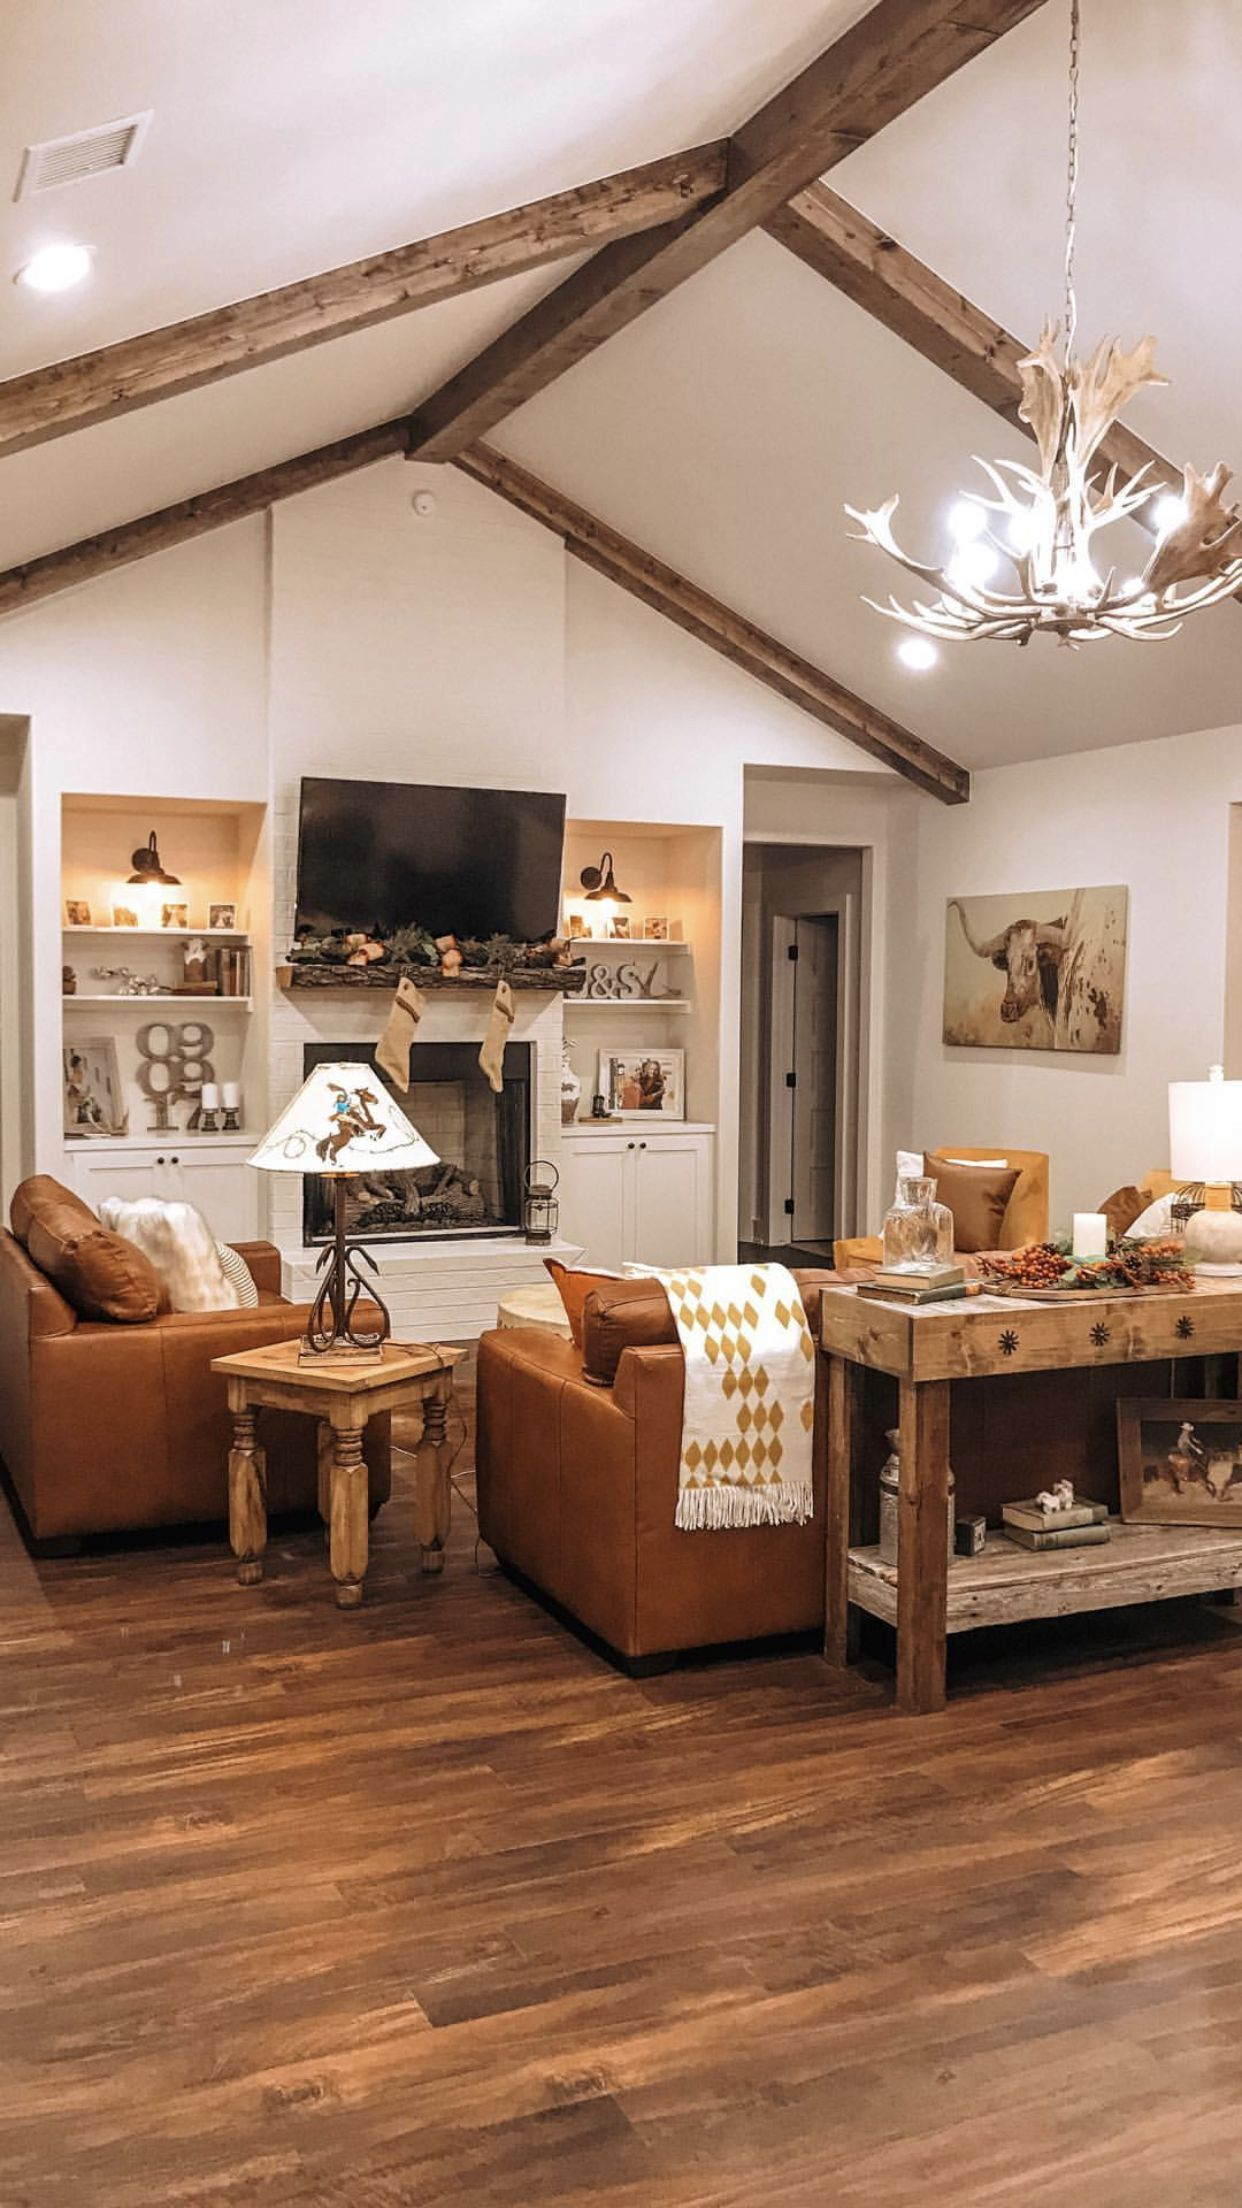 Photo of 40 Outstanding Western Living Room Decor #Western #LivingRoom #Decor